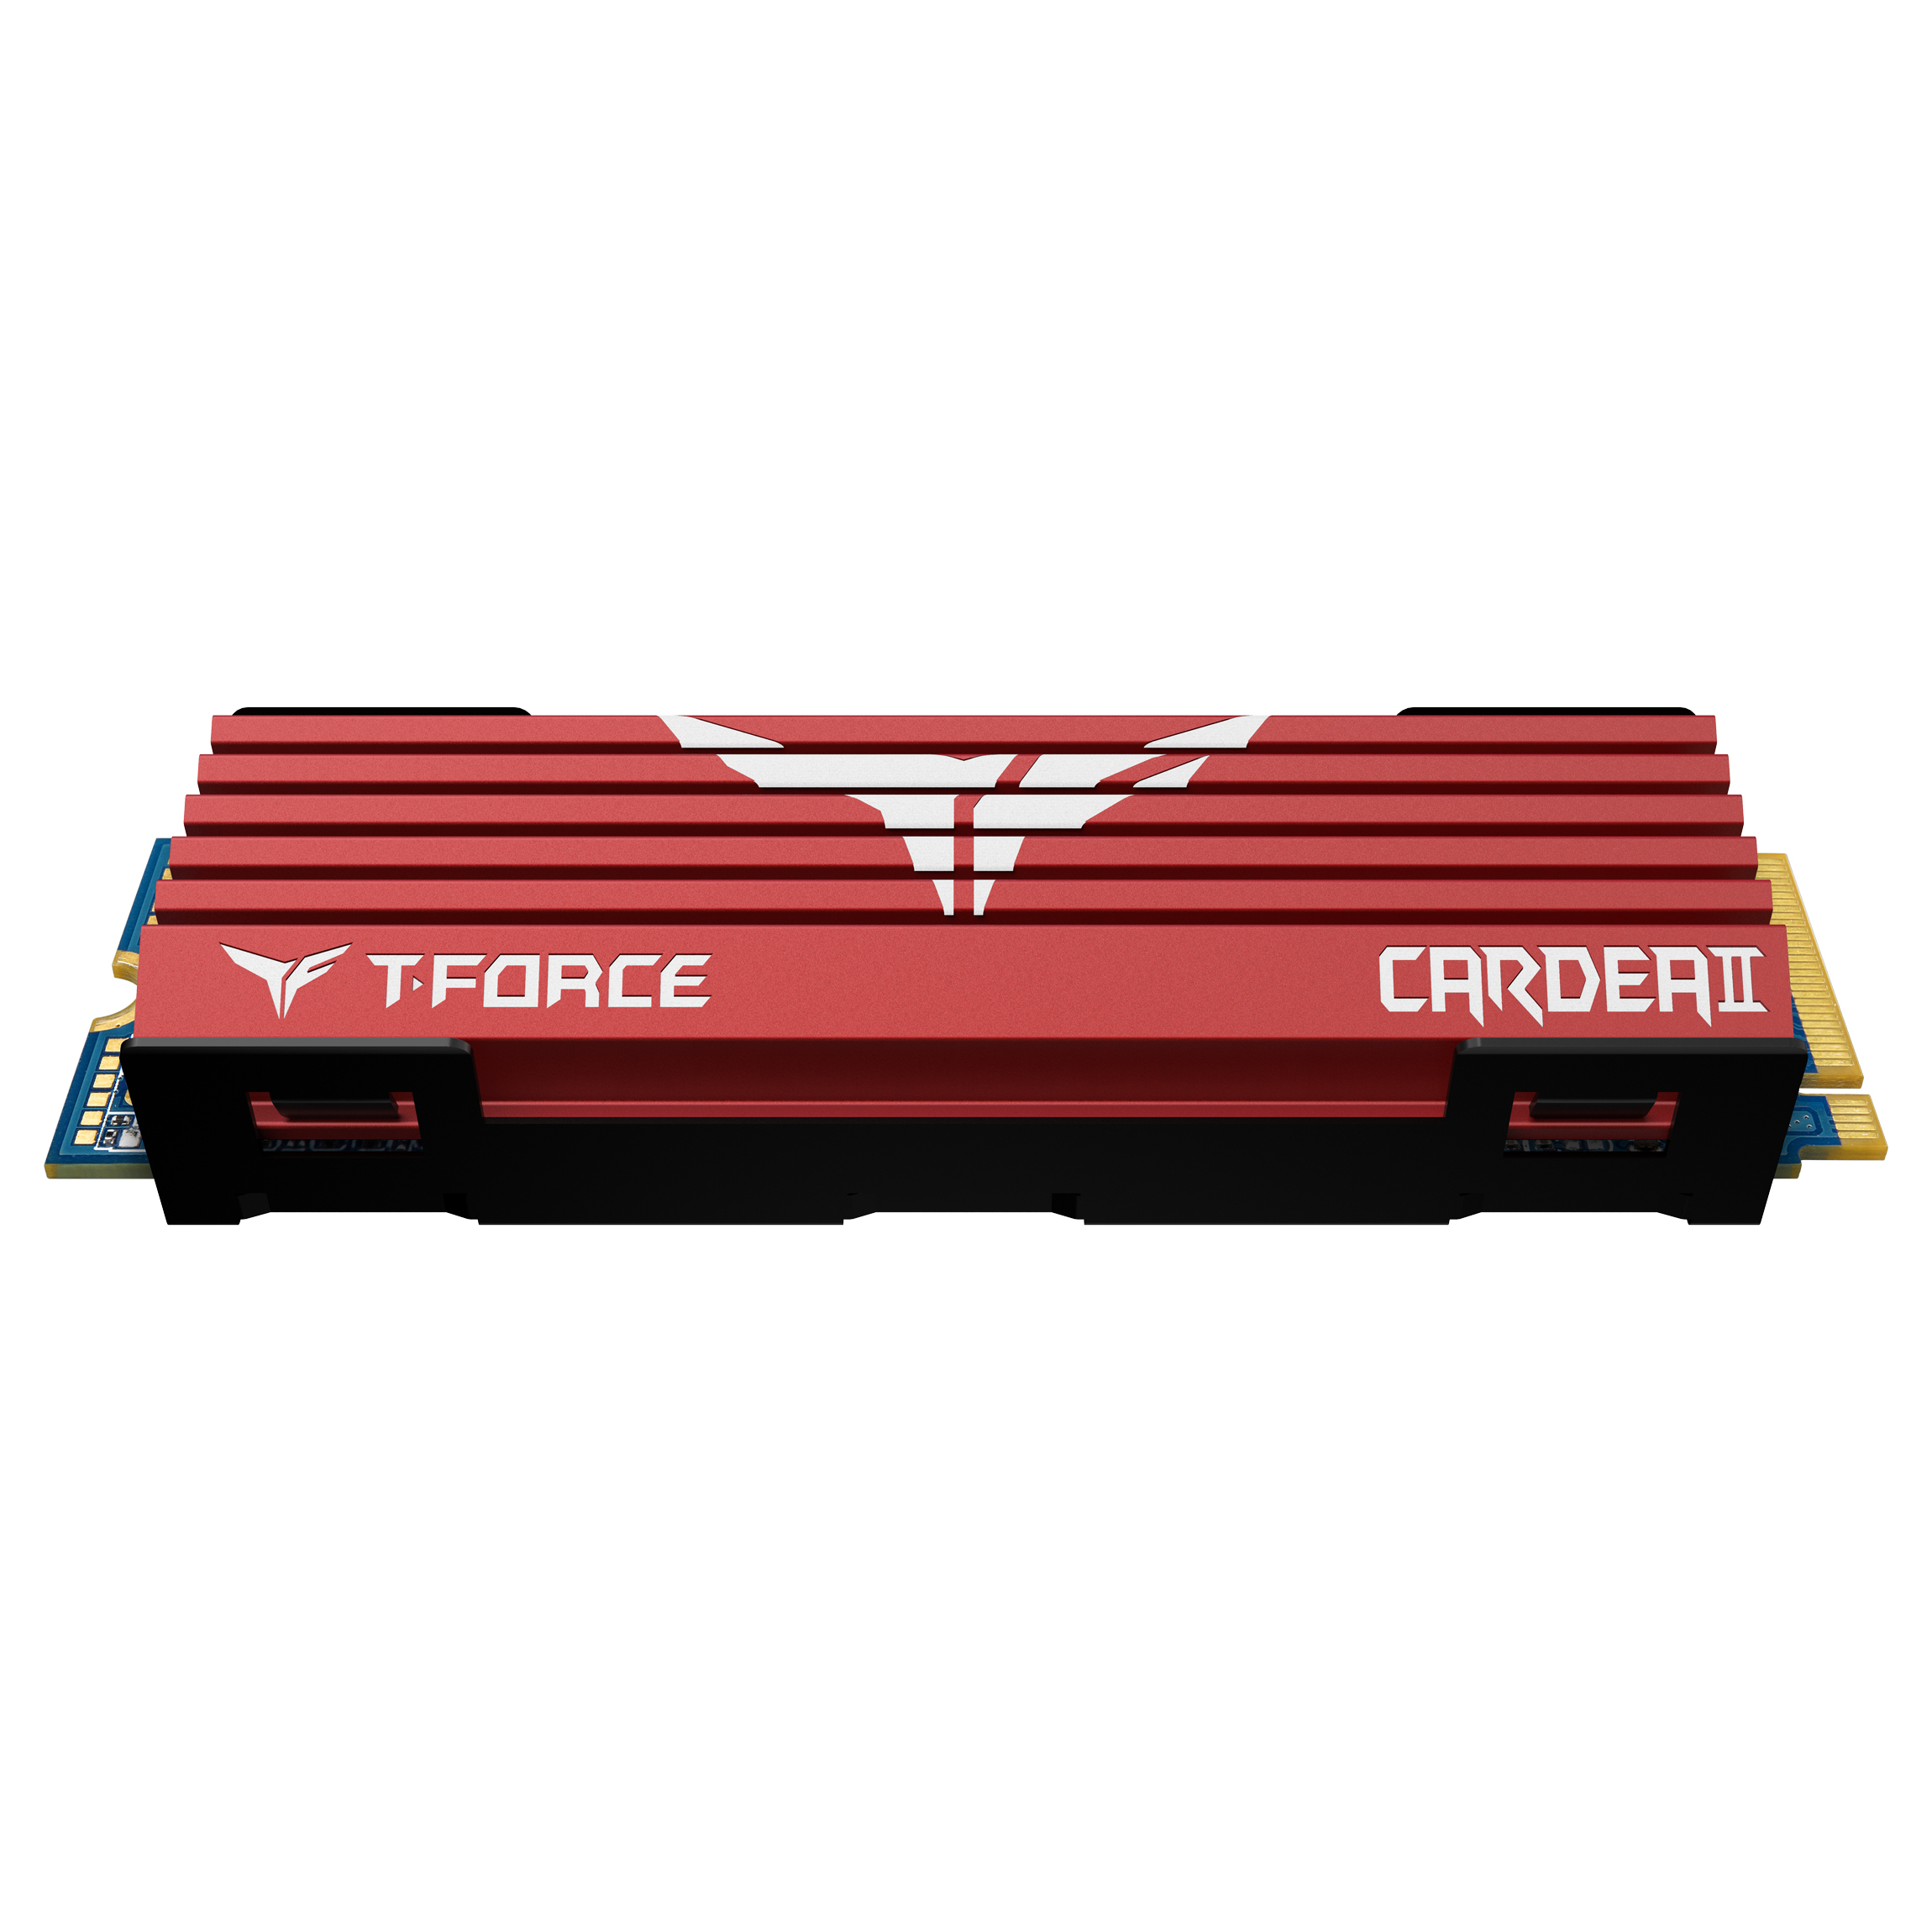 t-force-ssd-cardea-ii-bk-2-2300.jpg [MS-15481123719086096-98587253-FR]/Catalogue produit / Online